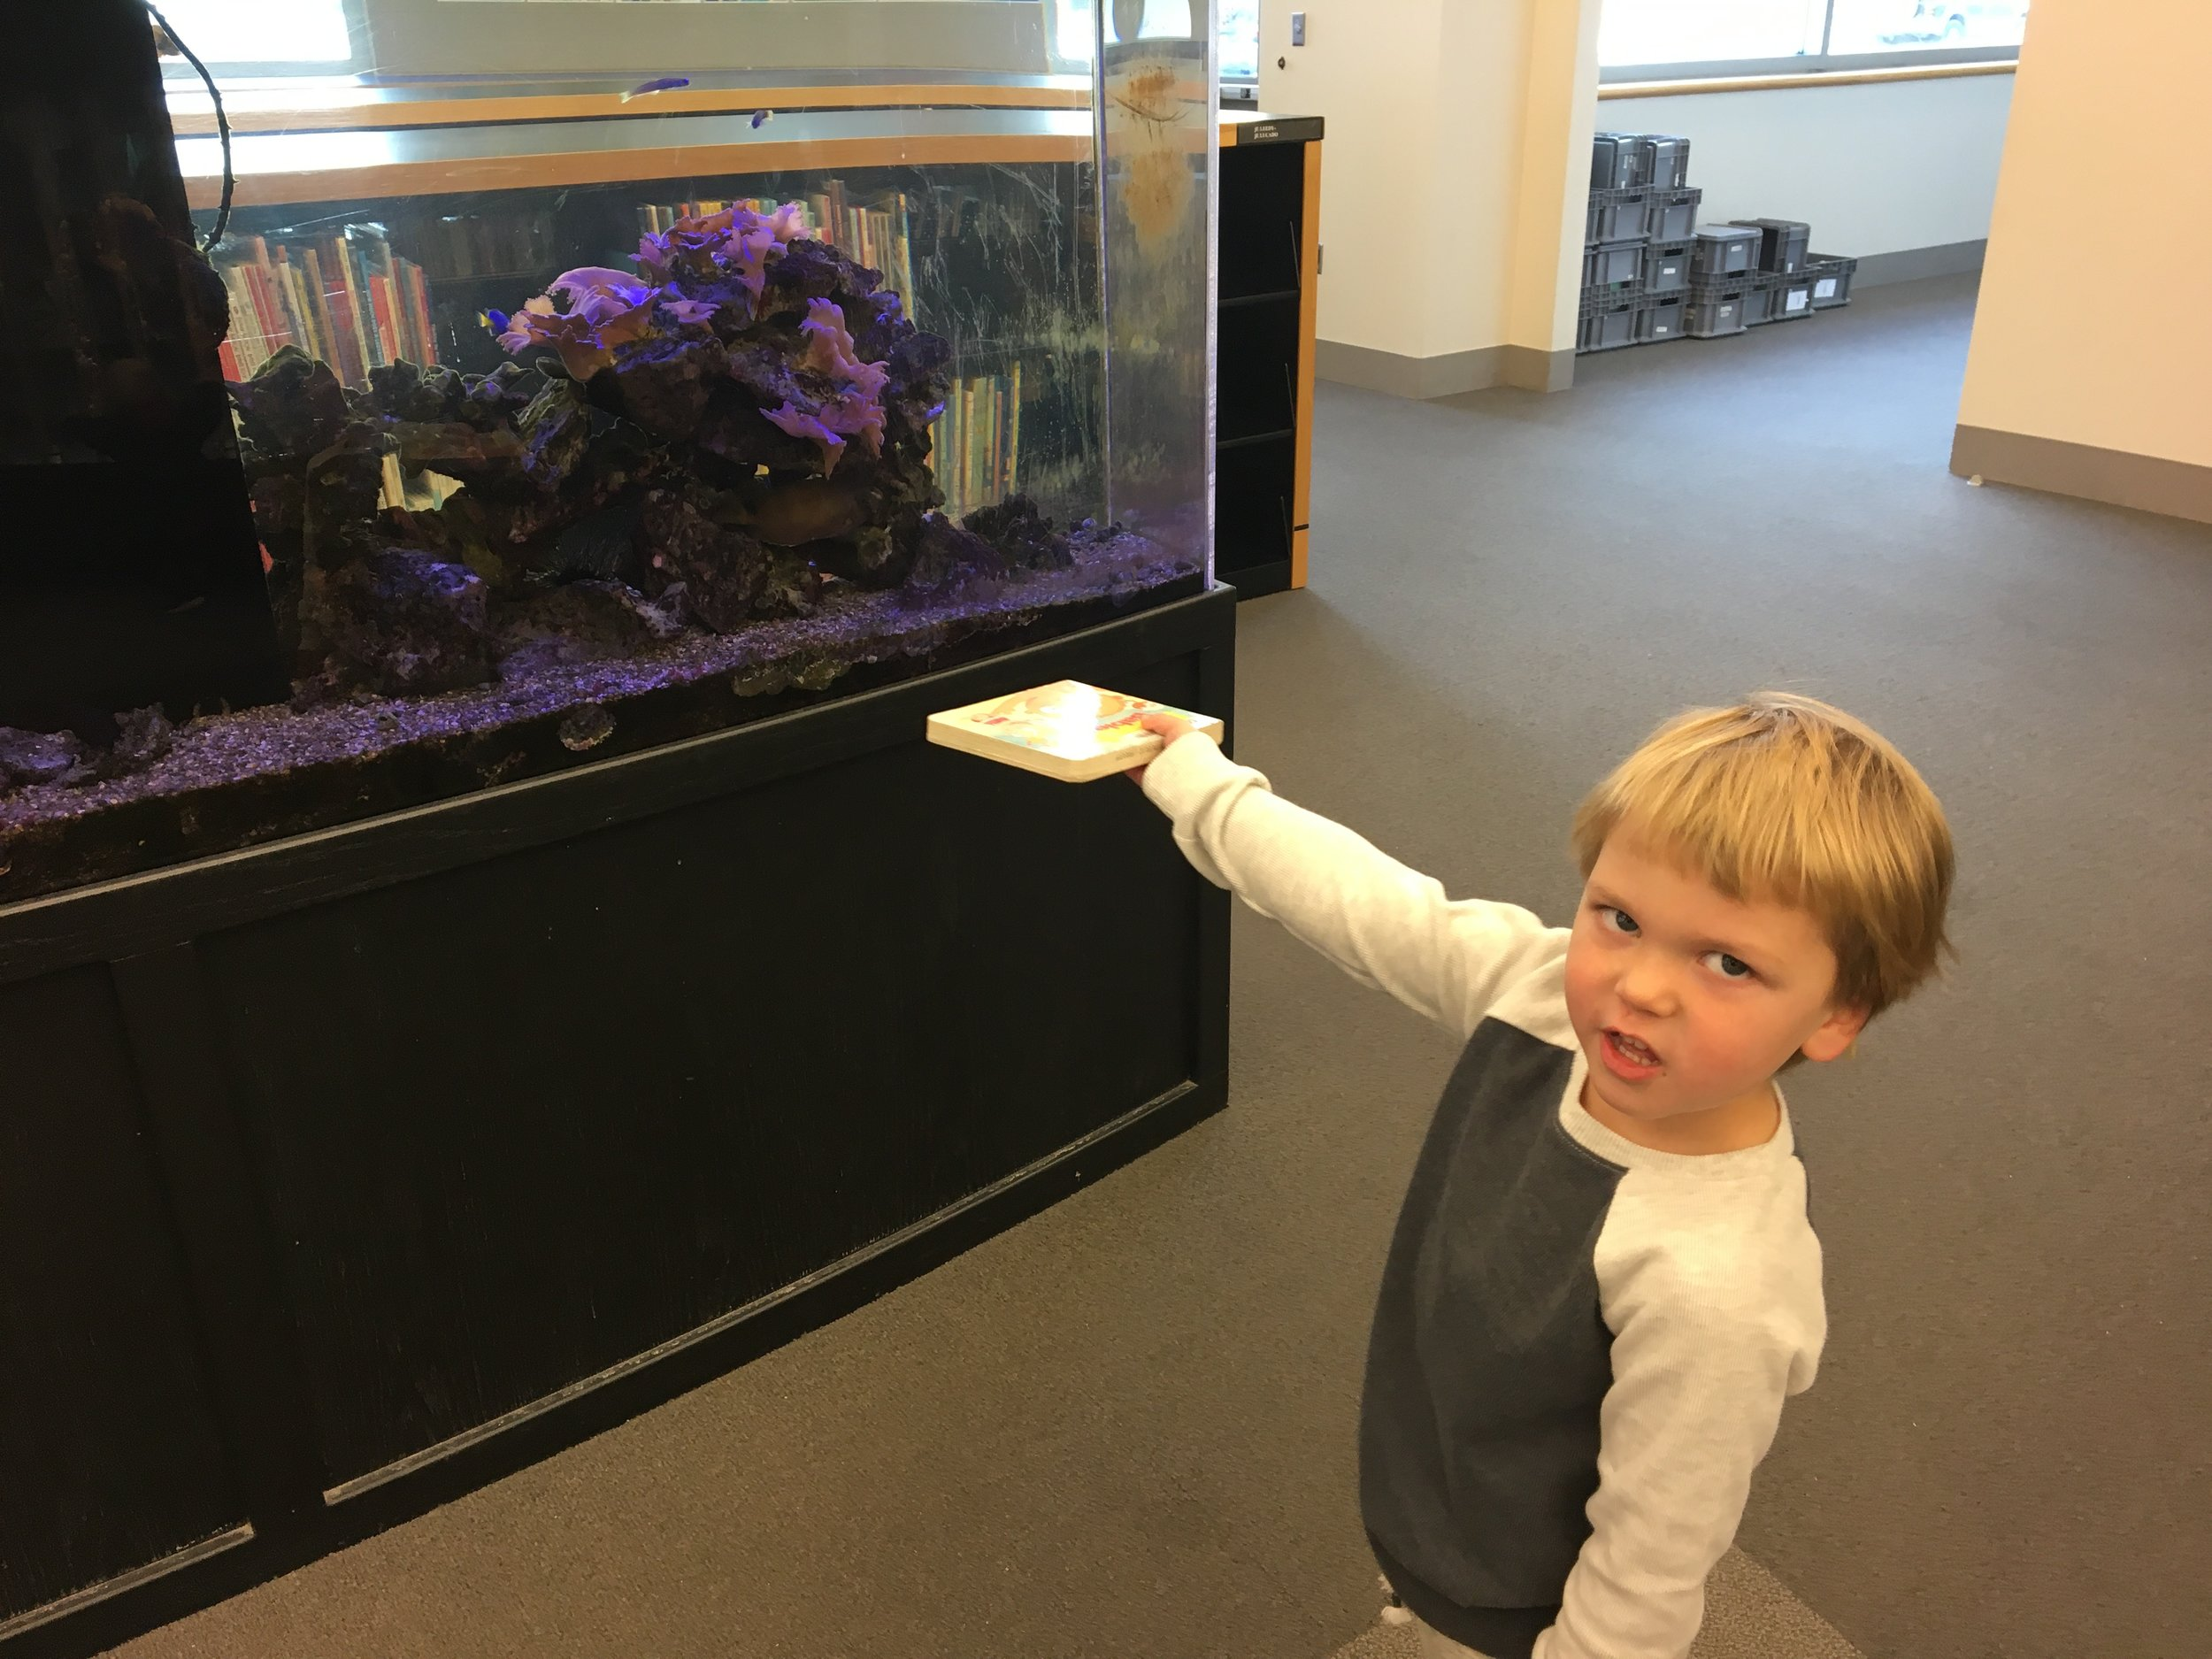 W52: Checking out the aquarium at the library